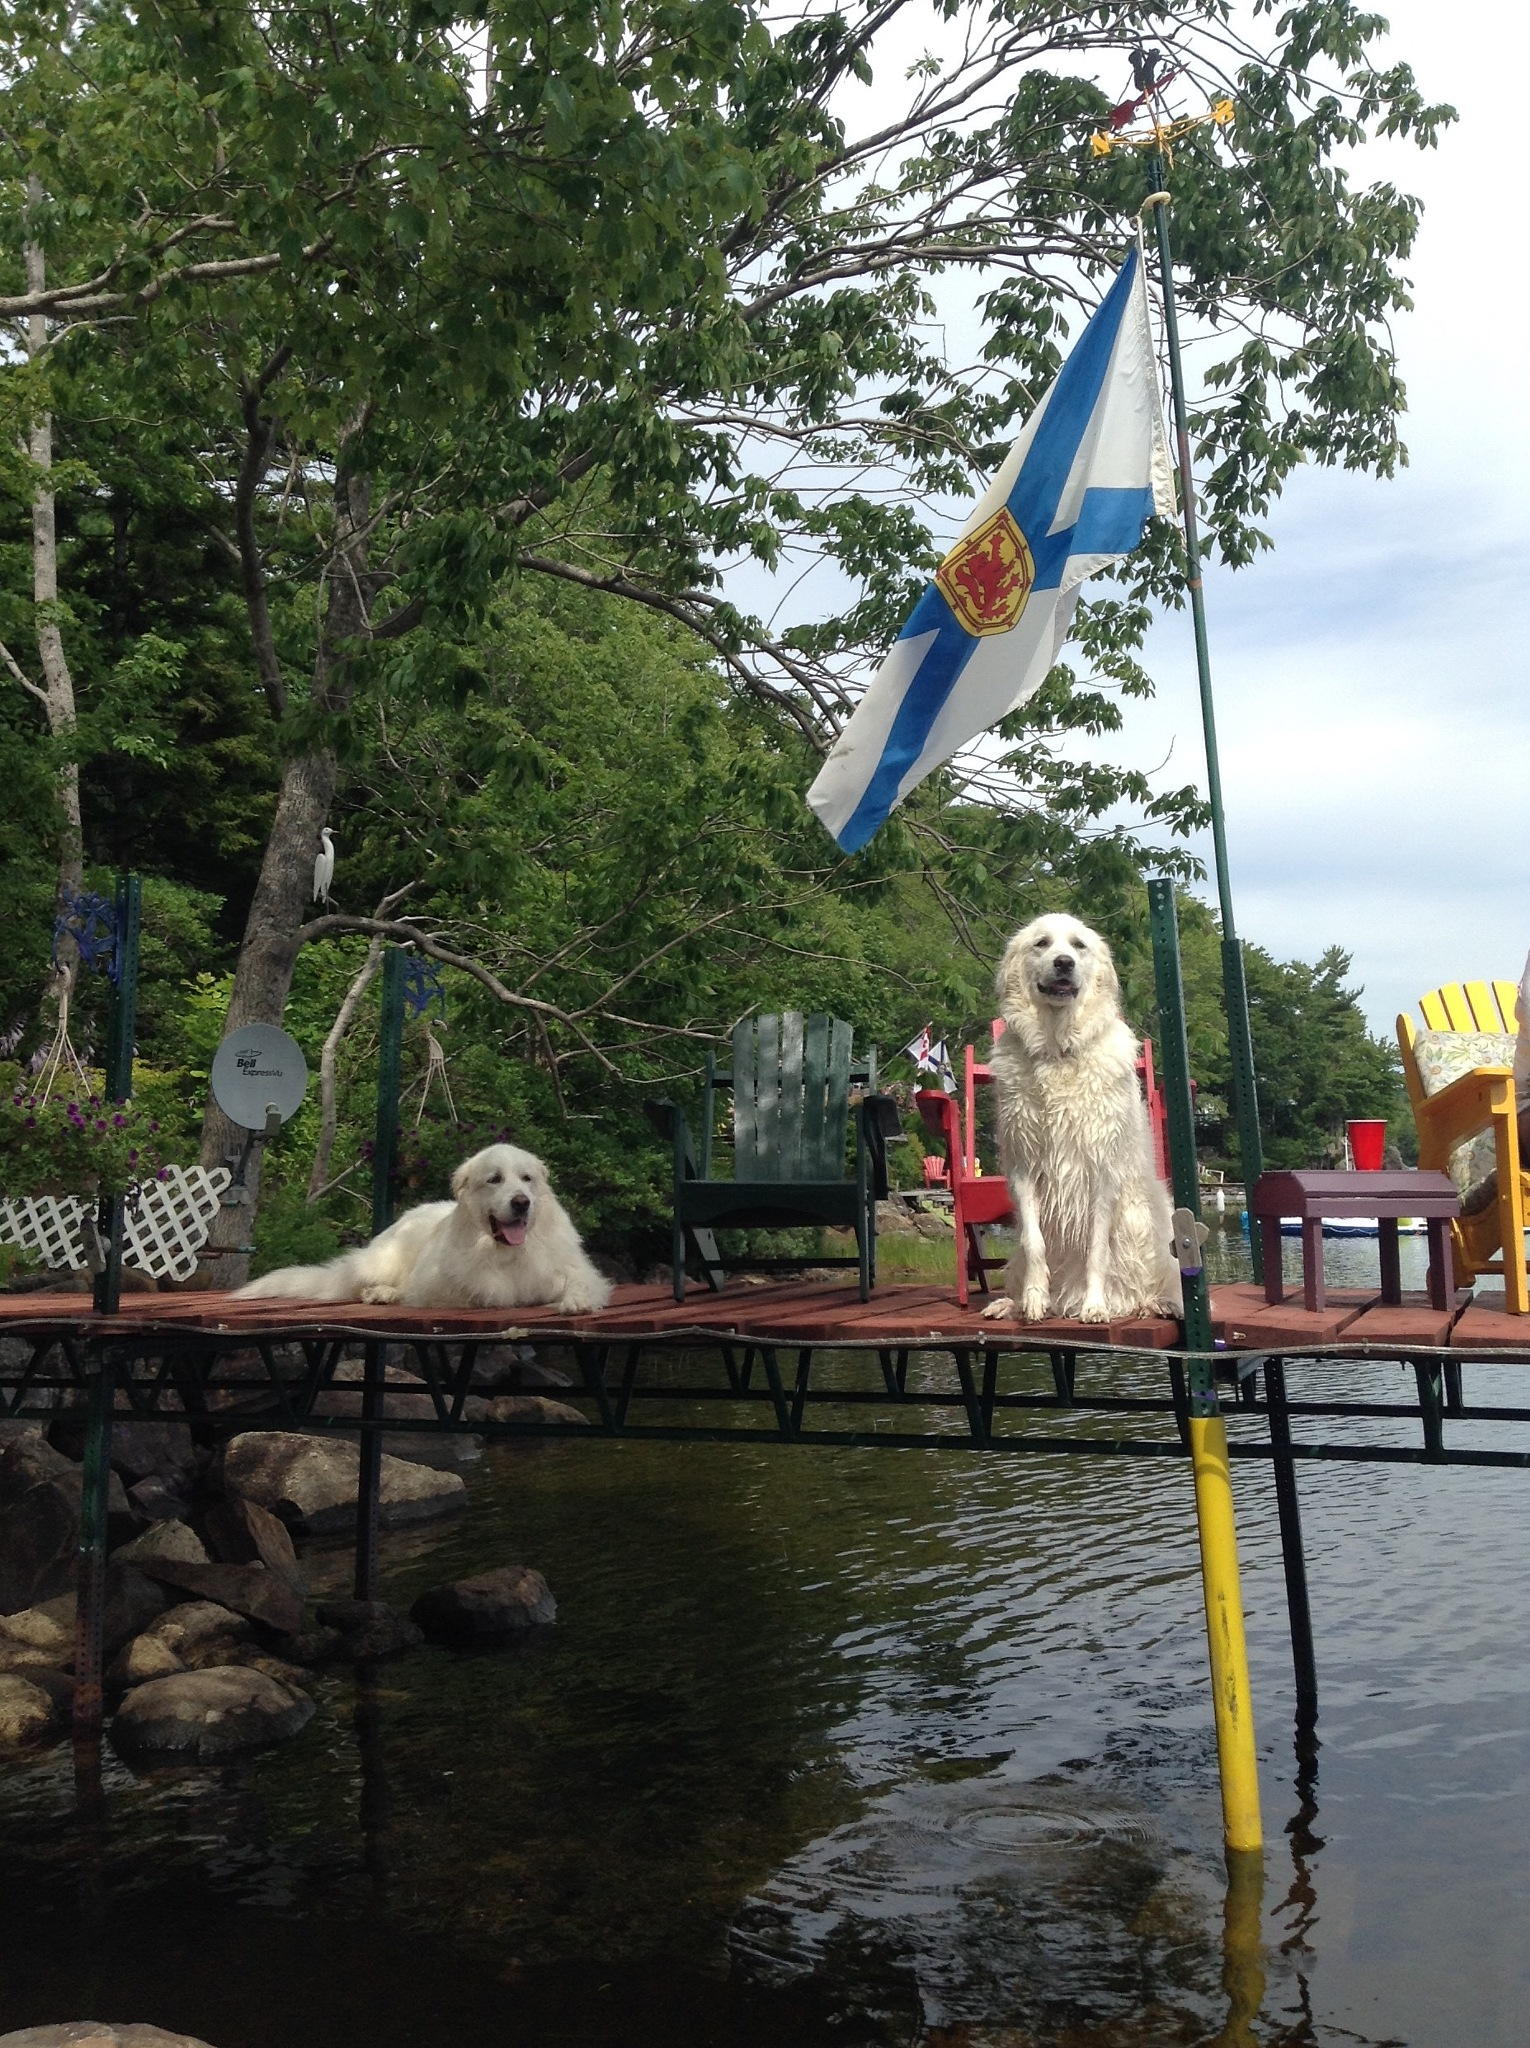 Dogs at the cottage by Shutterbug006